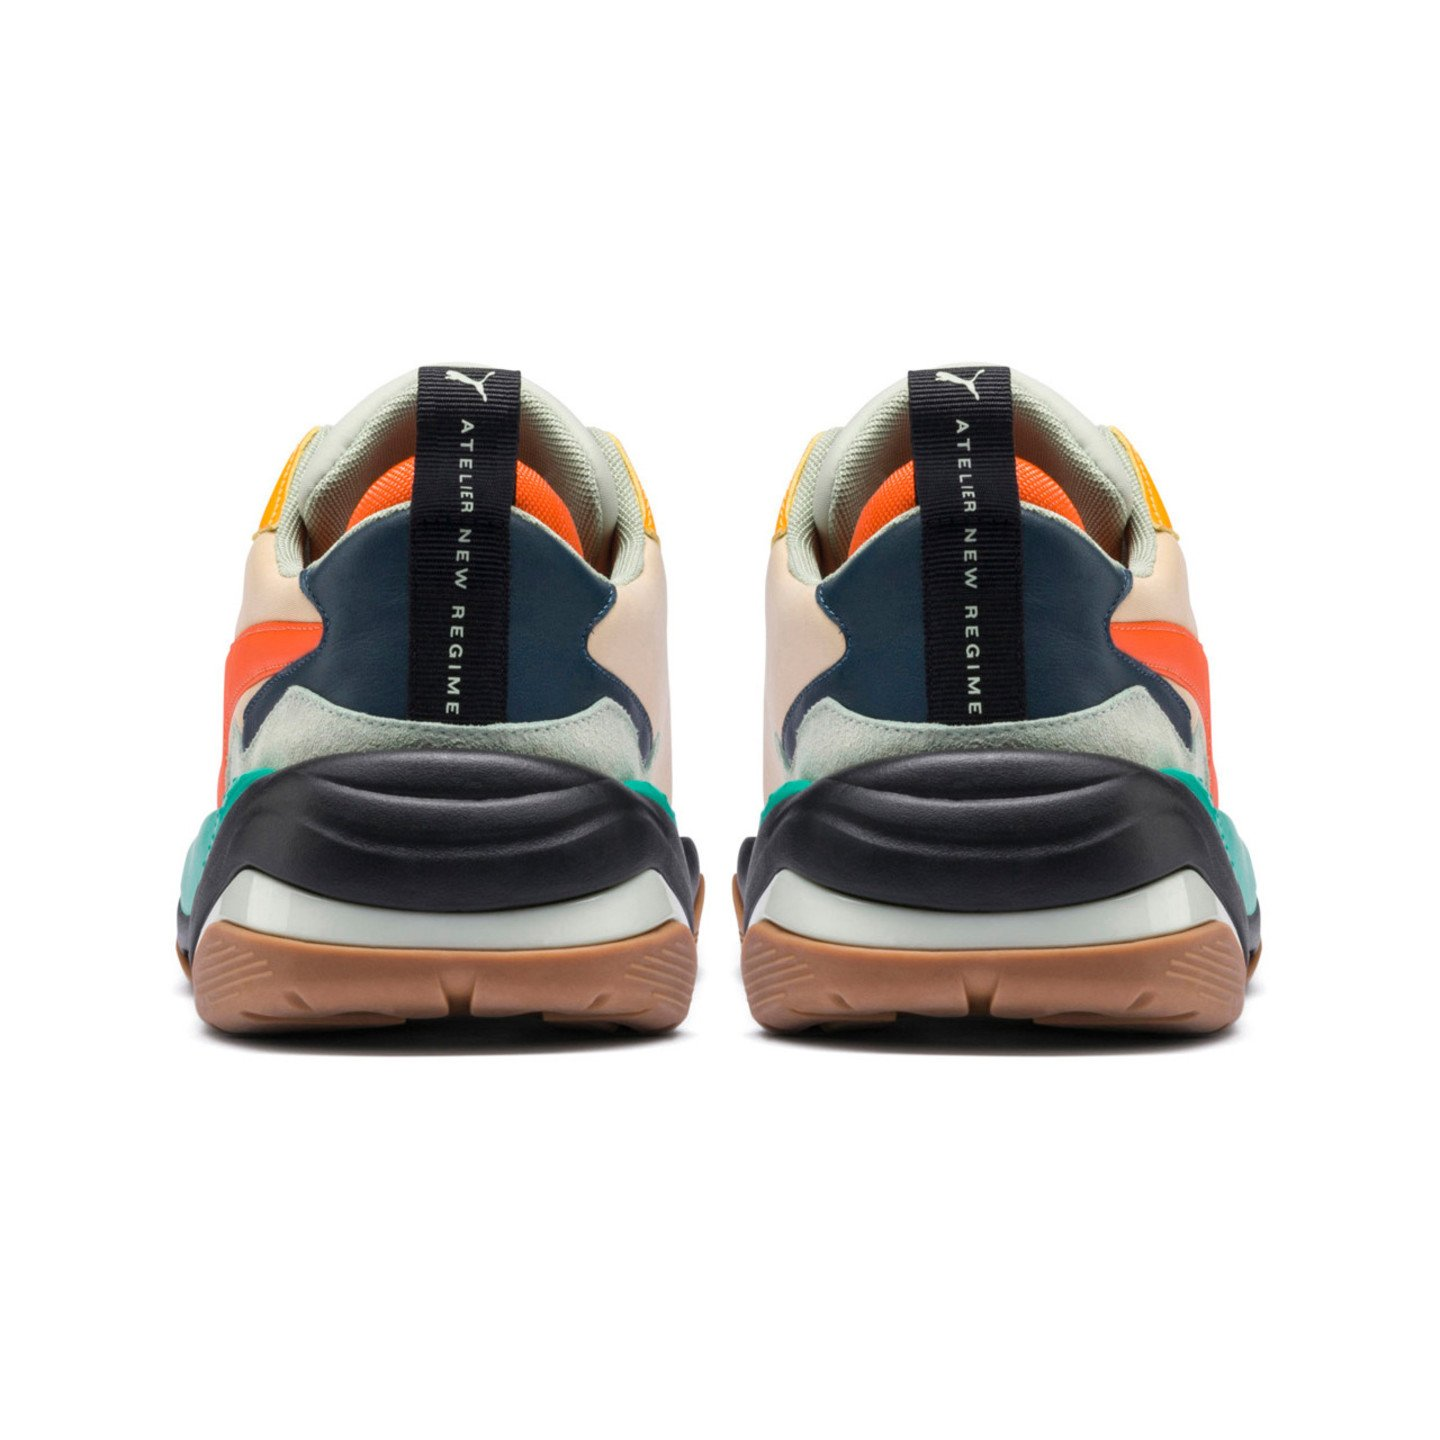 Puma Thunder x Atelier New Regime Multicolor 368042-01